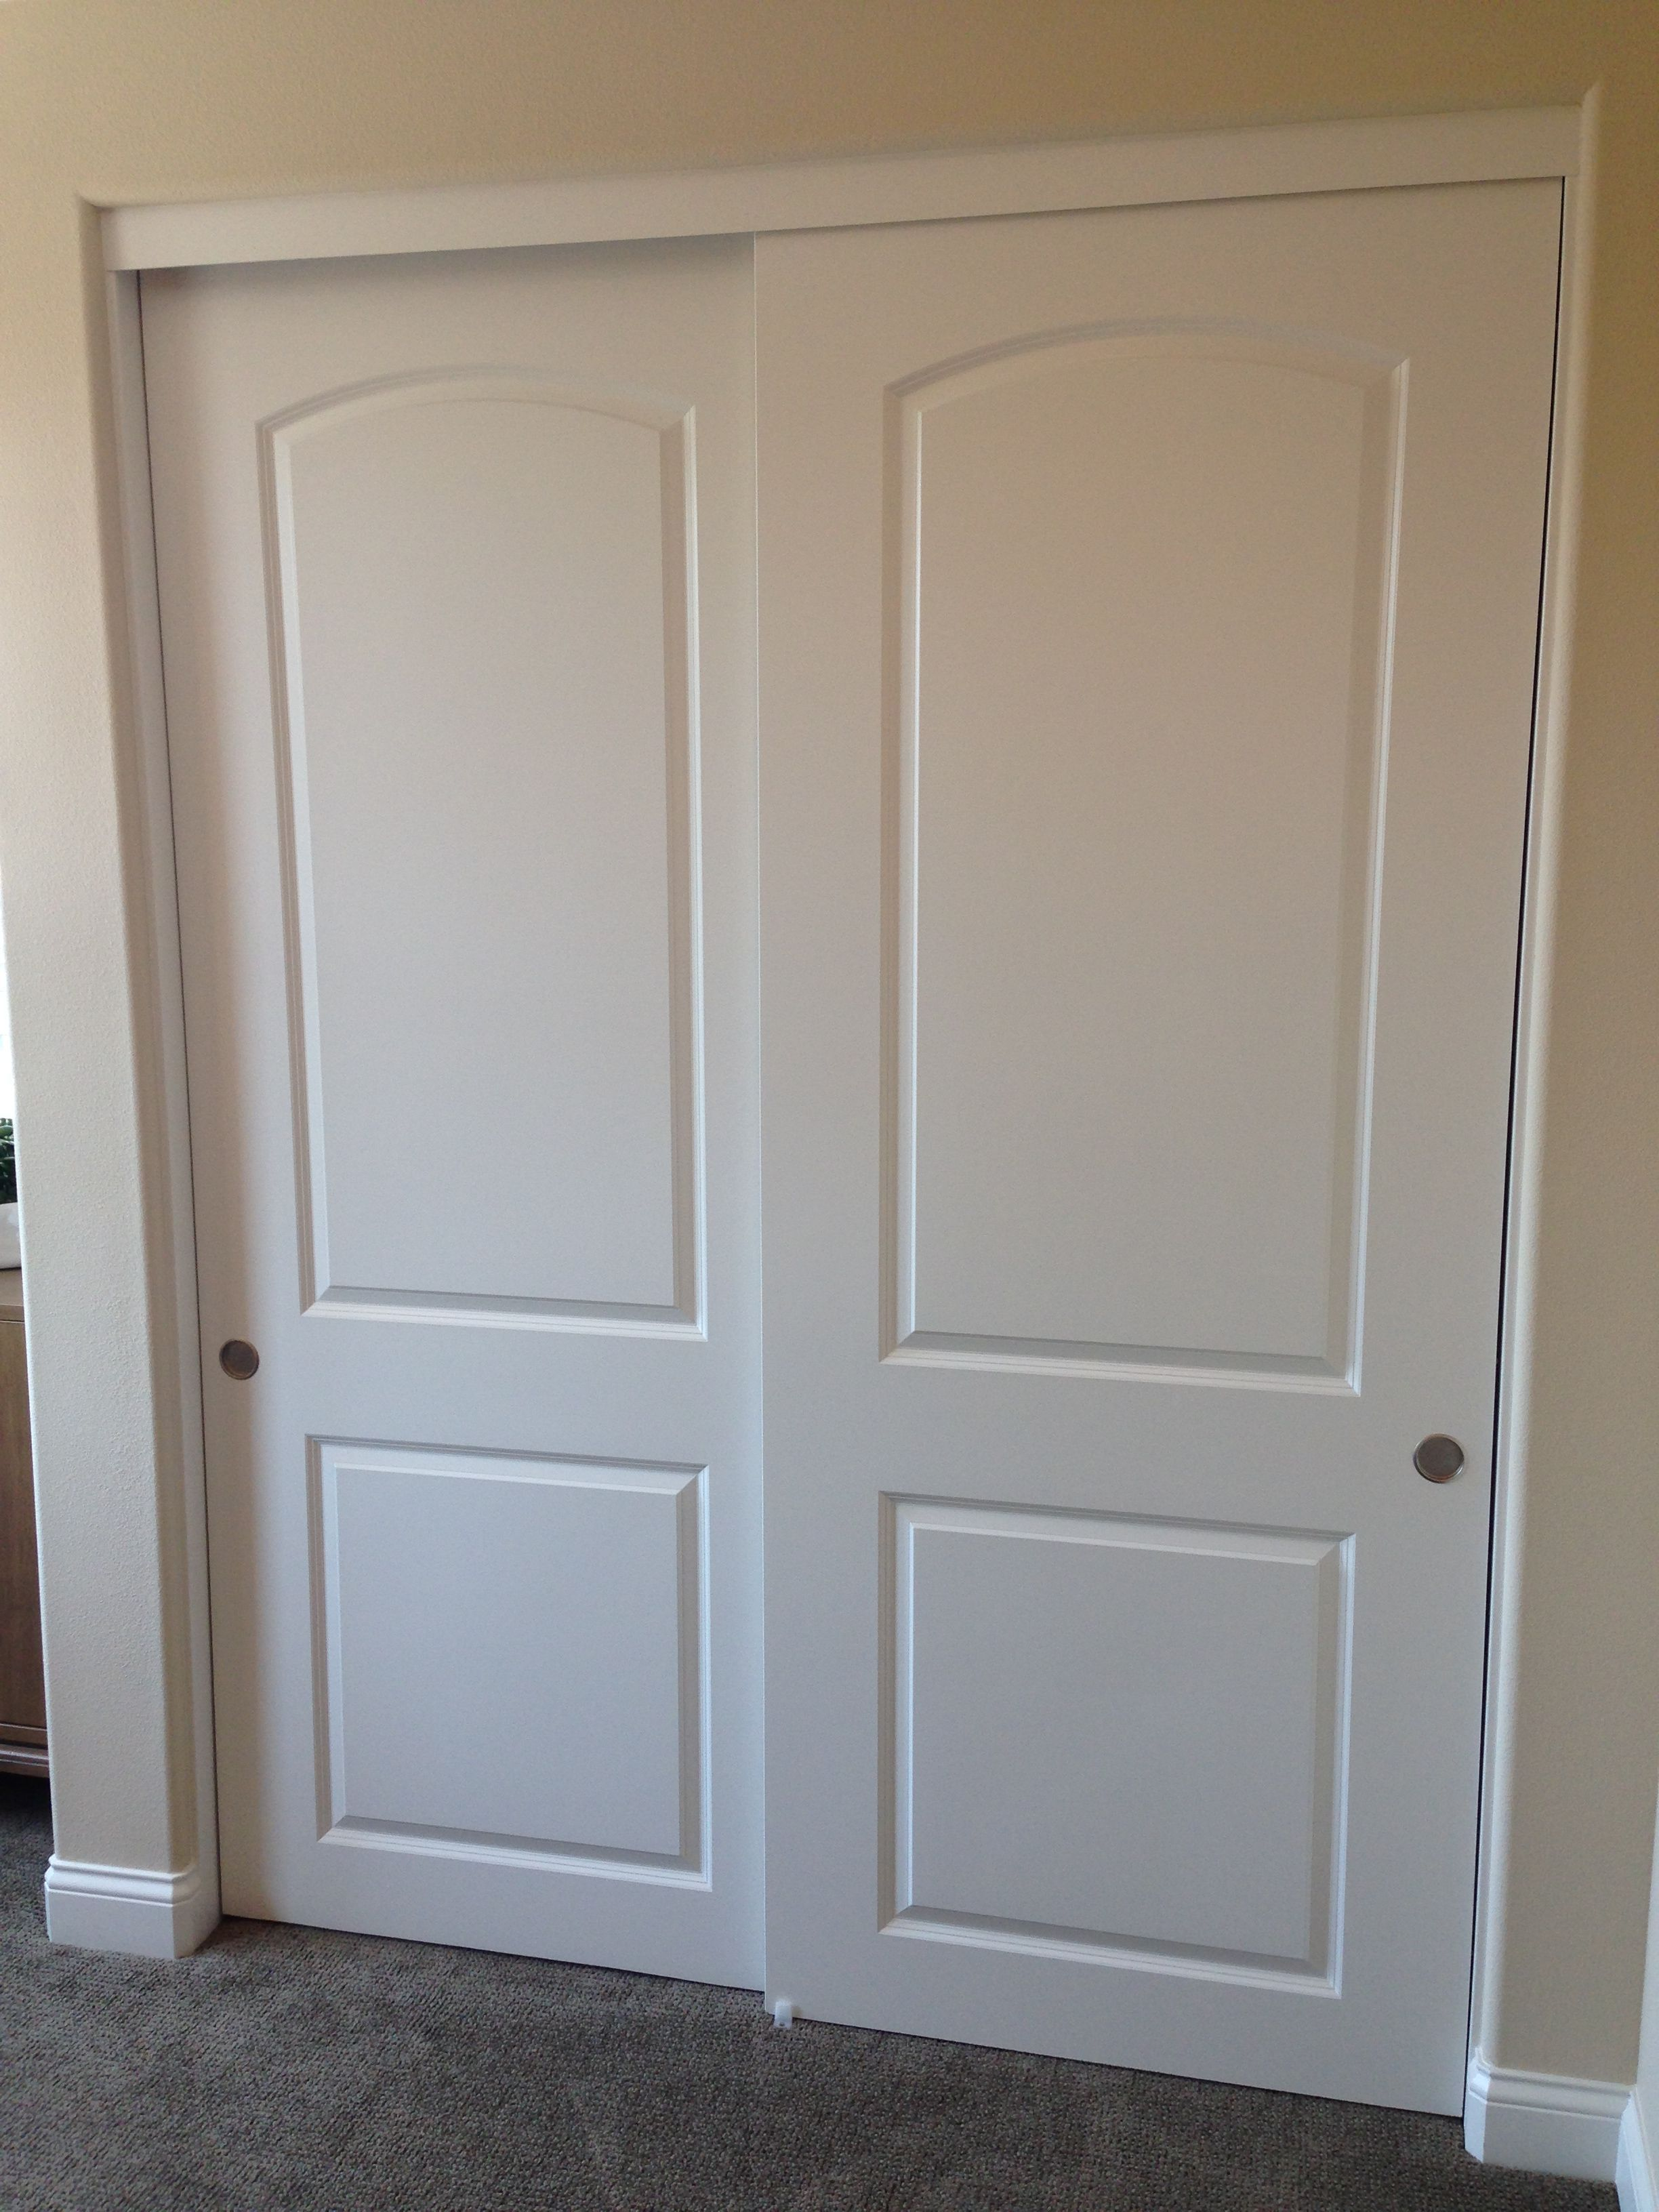 2 panel 2 track hollow core mdf bypass sliding closet doors with